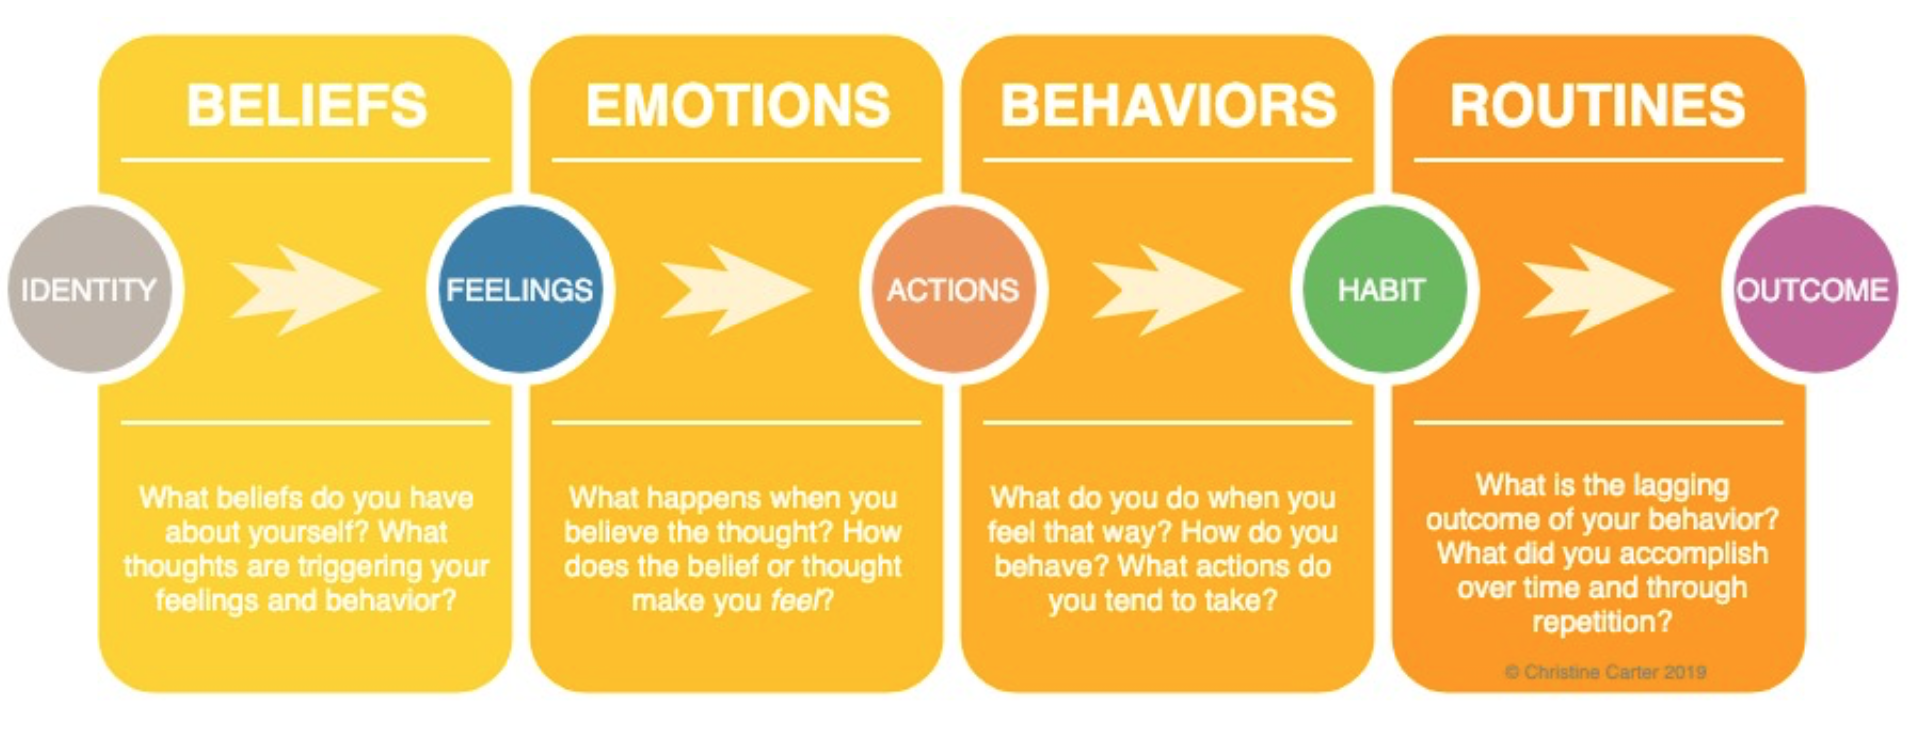 A chart of how beliefs influence emotions then behaviors then routines